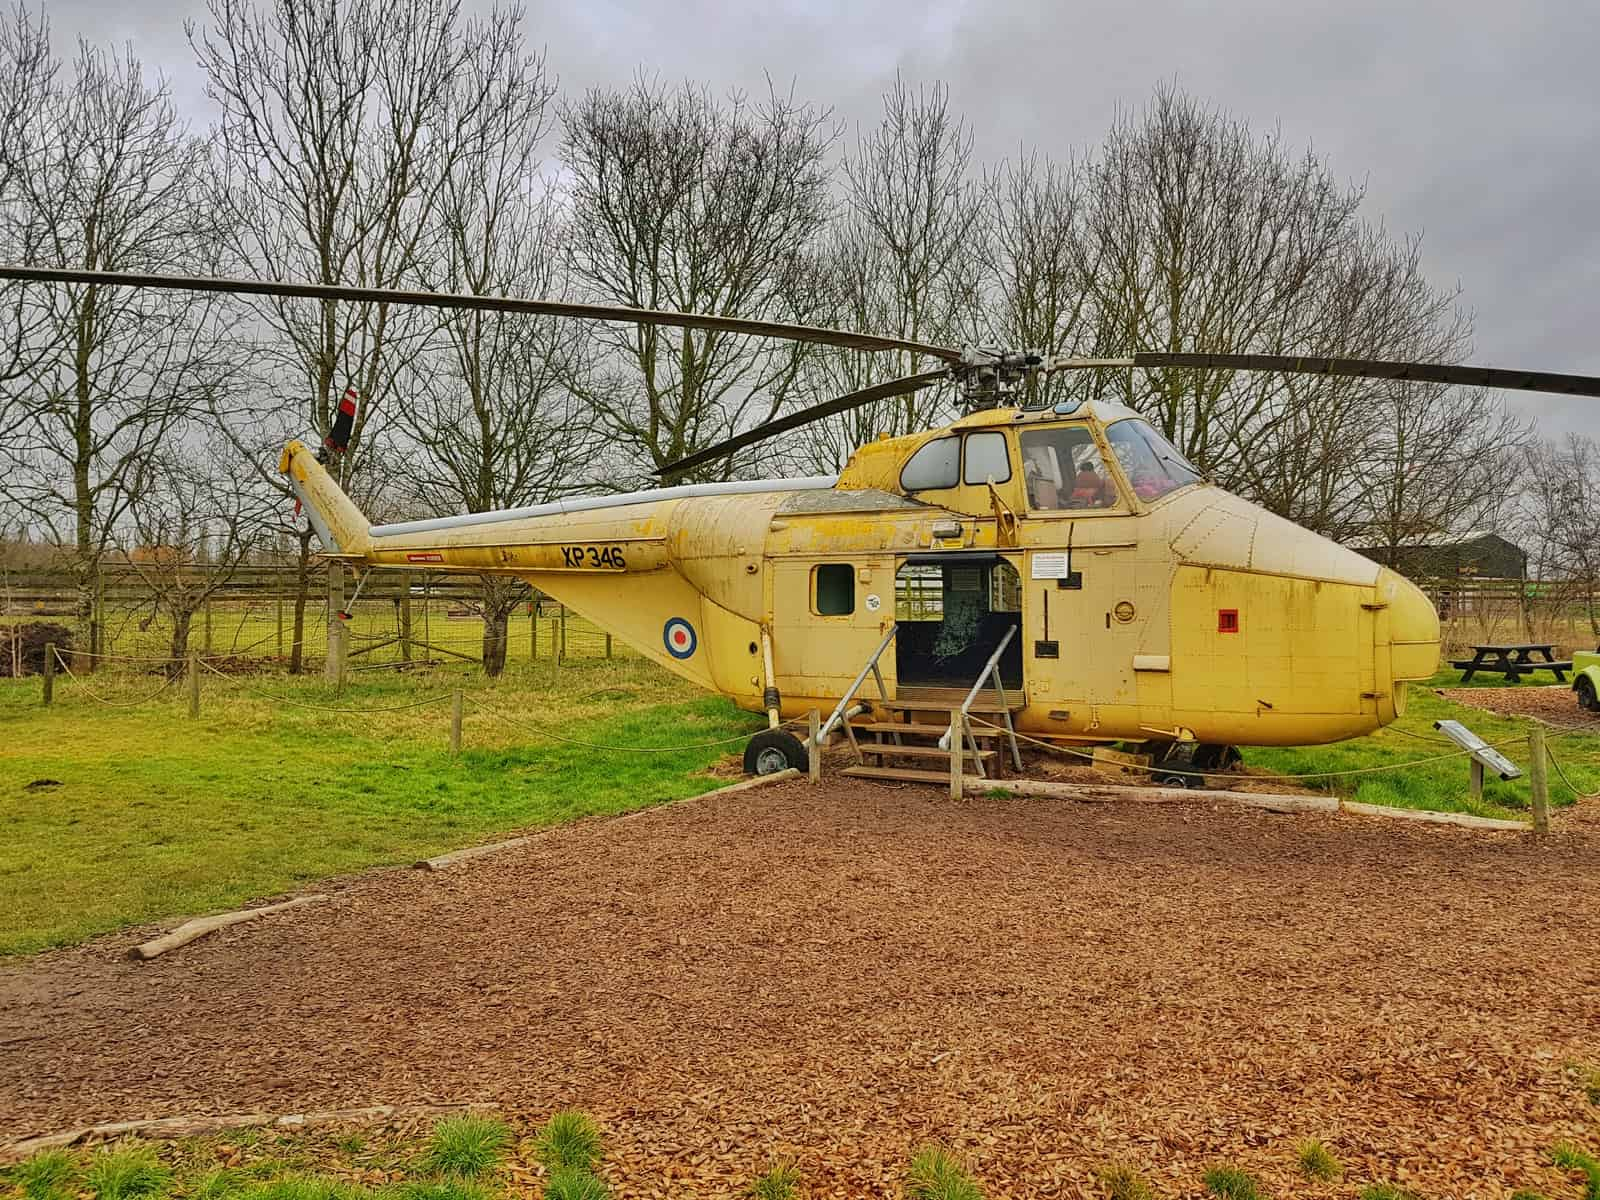 Helicopter in children's park at All Things Wild near Evesham, one of the attractions that will be opening during the school summer holidays in the West Midlands.